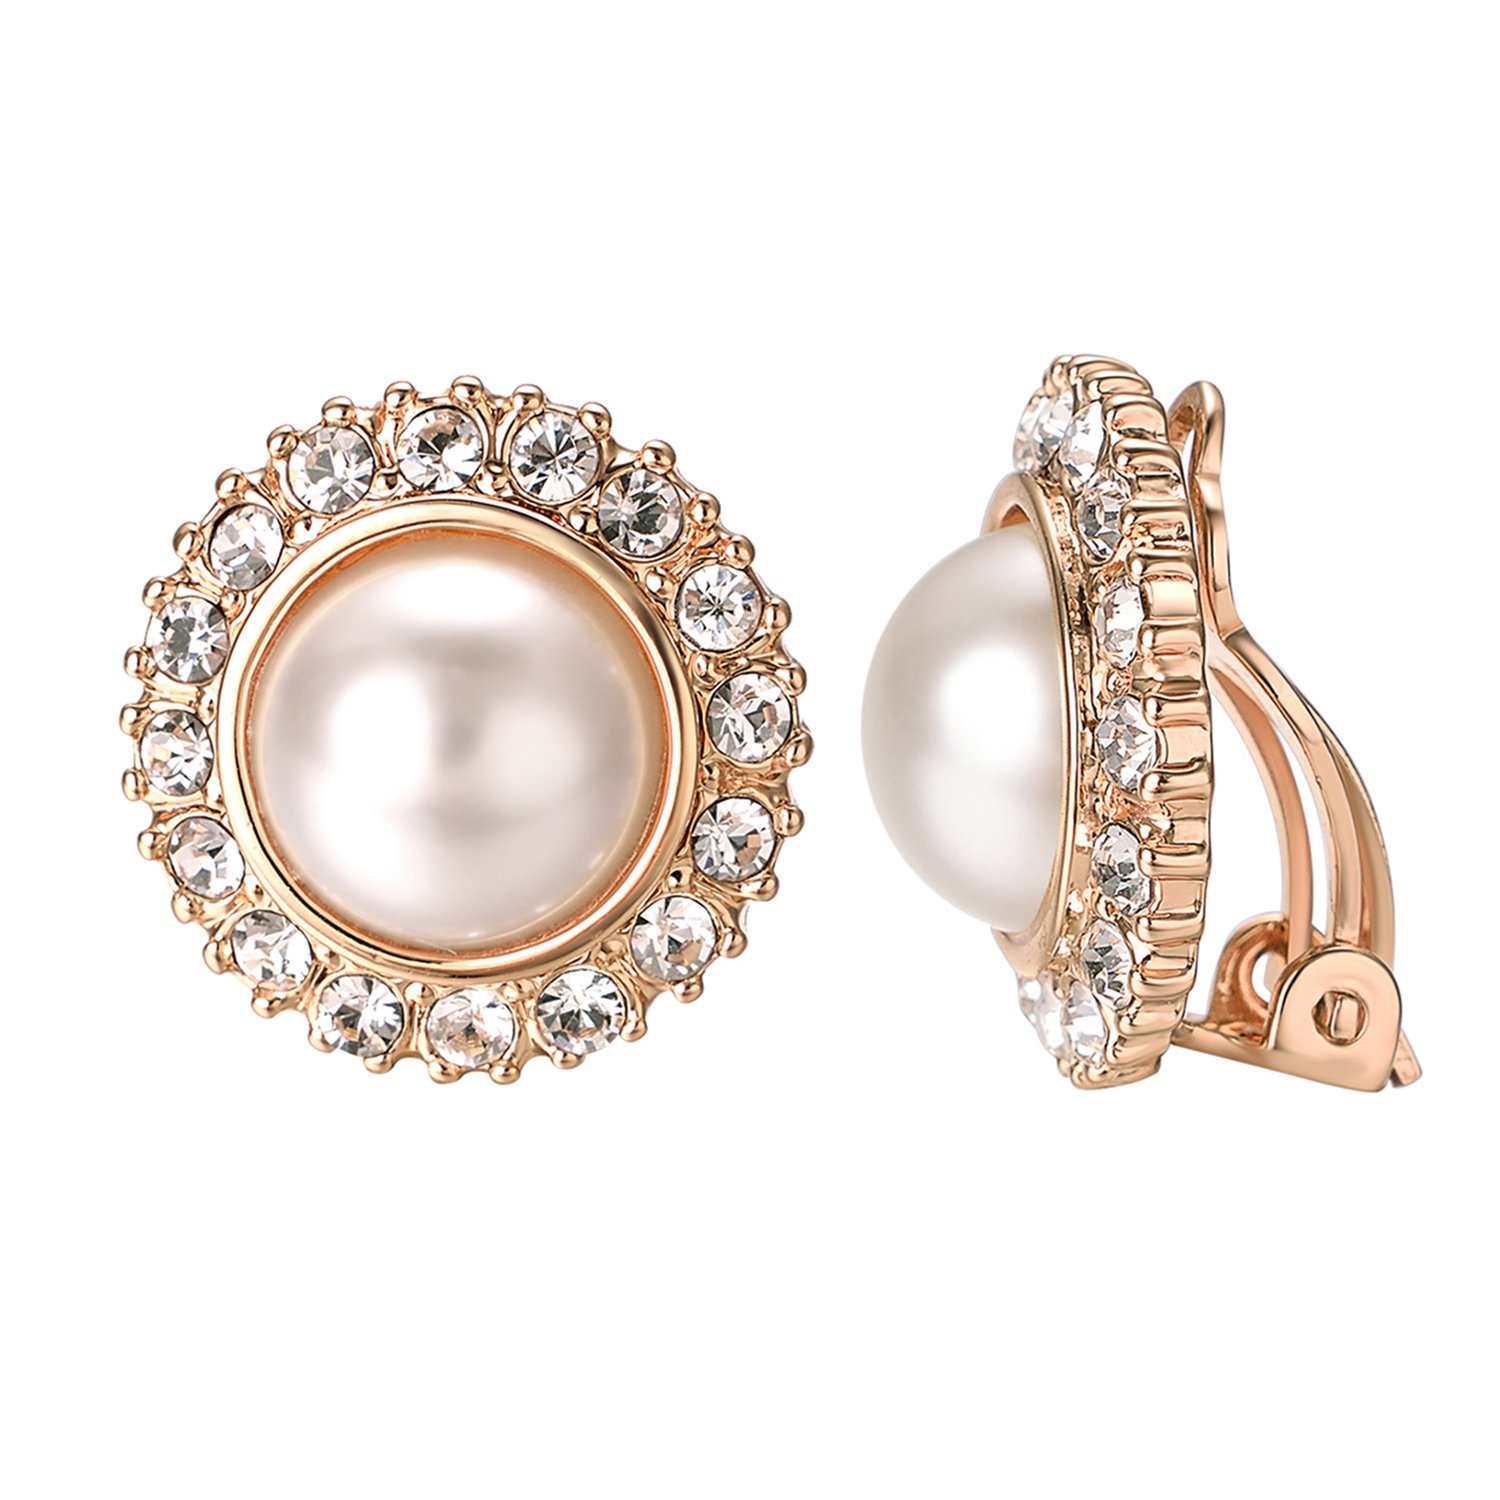 Yoursfs Clip earring Ivory pearl Round Earrings no Pierced Clip on Earrings for girls